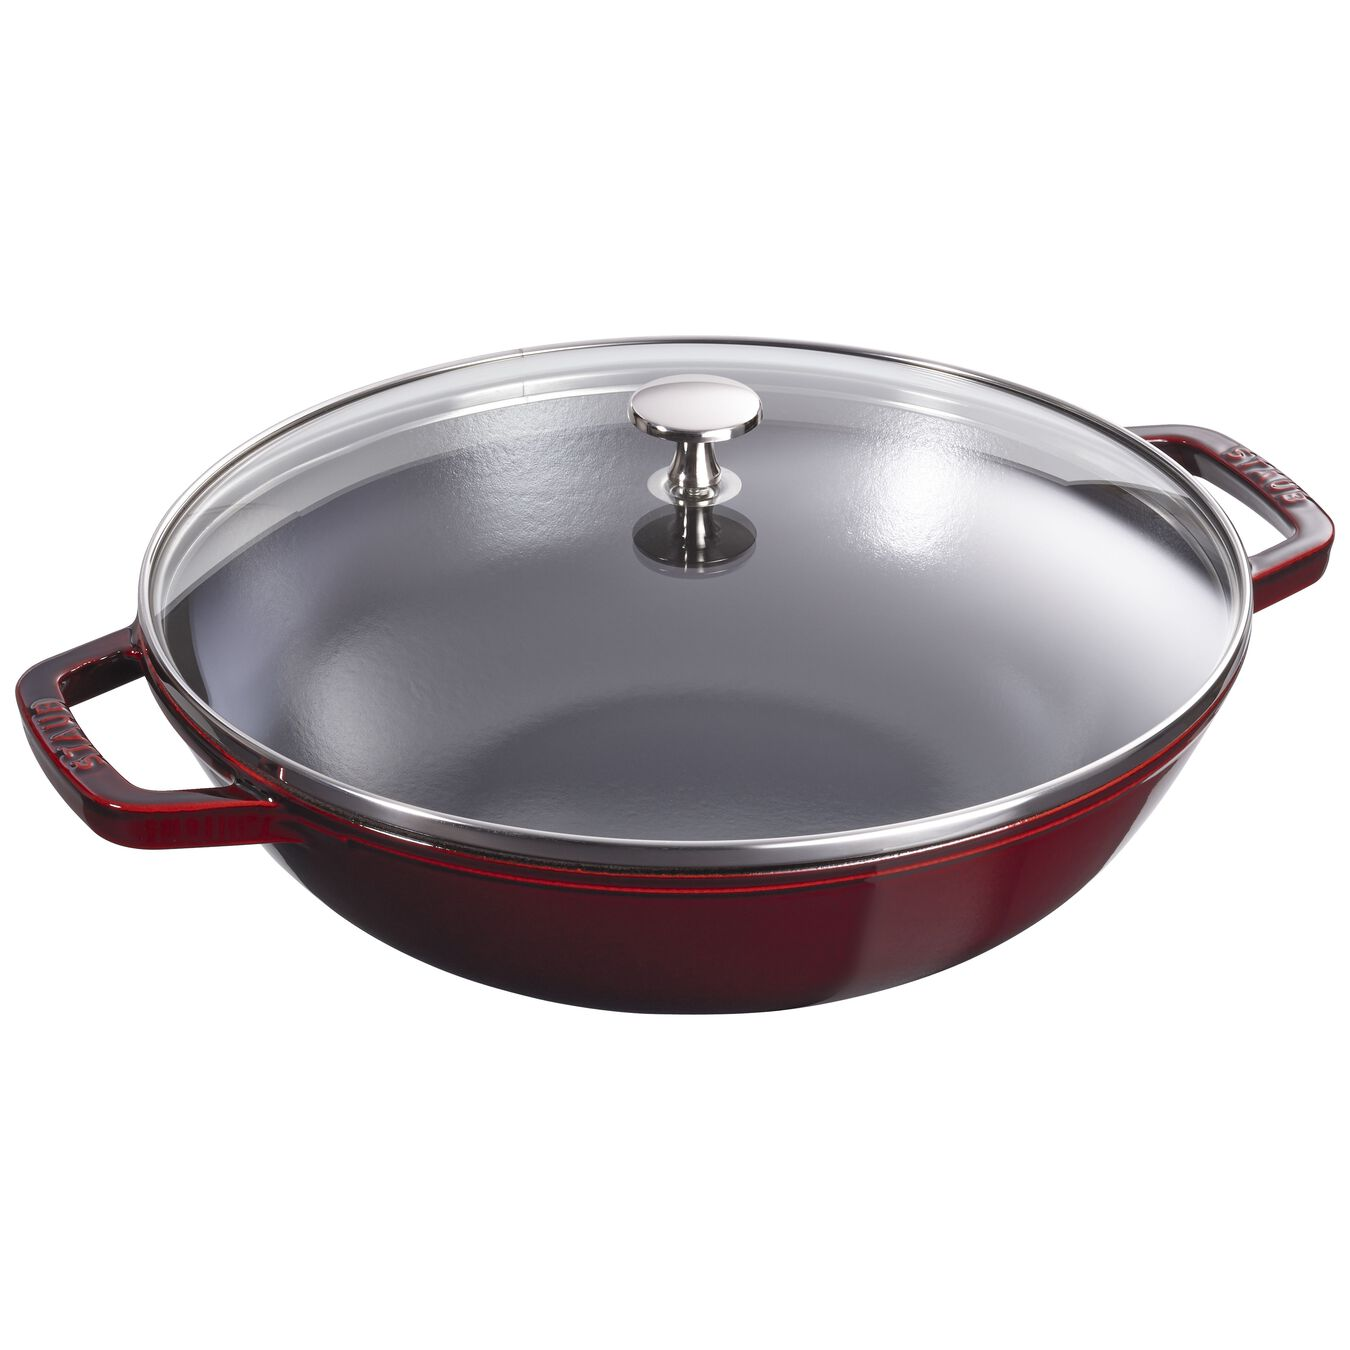 30 cm / 12 inch Cast iron Wok with glass lid, Grenadine-Red,,large 1